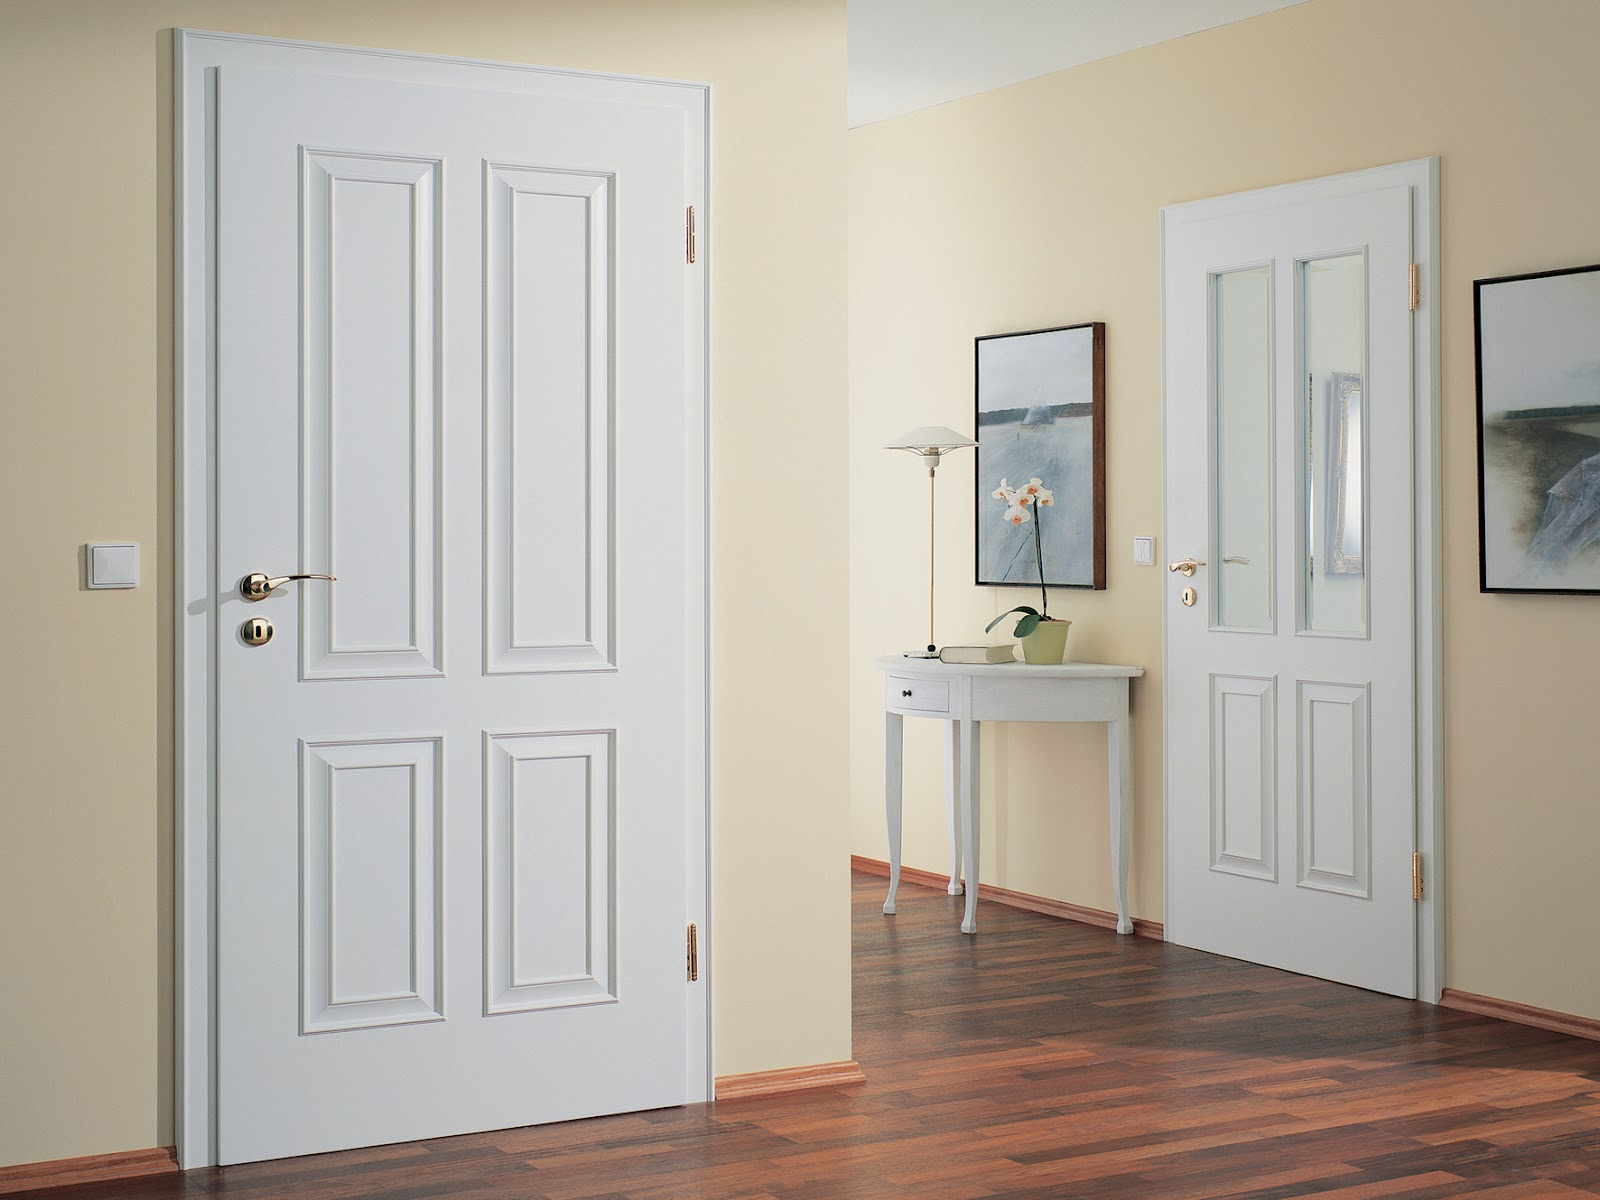 Home Improvement Advice: Internal doors... what you should ...